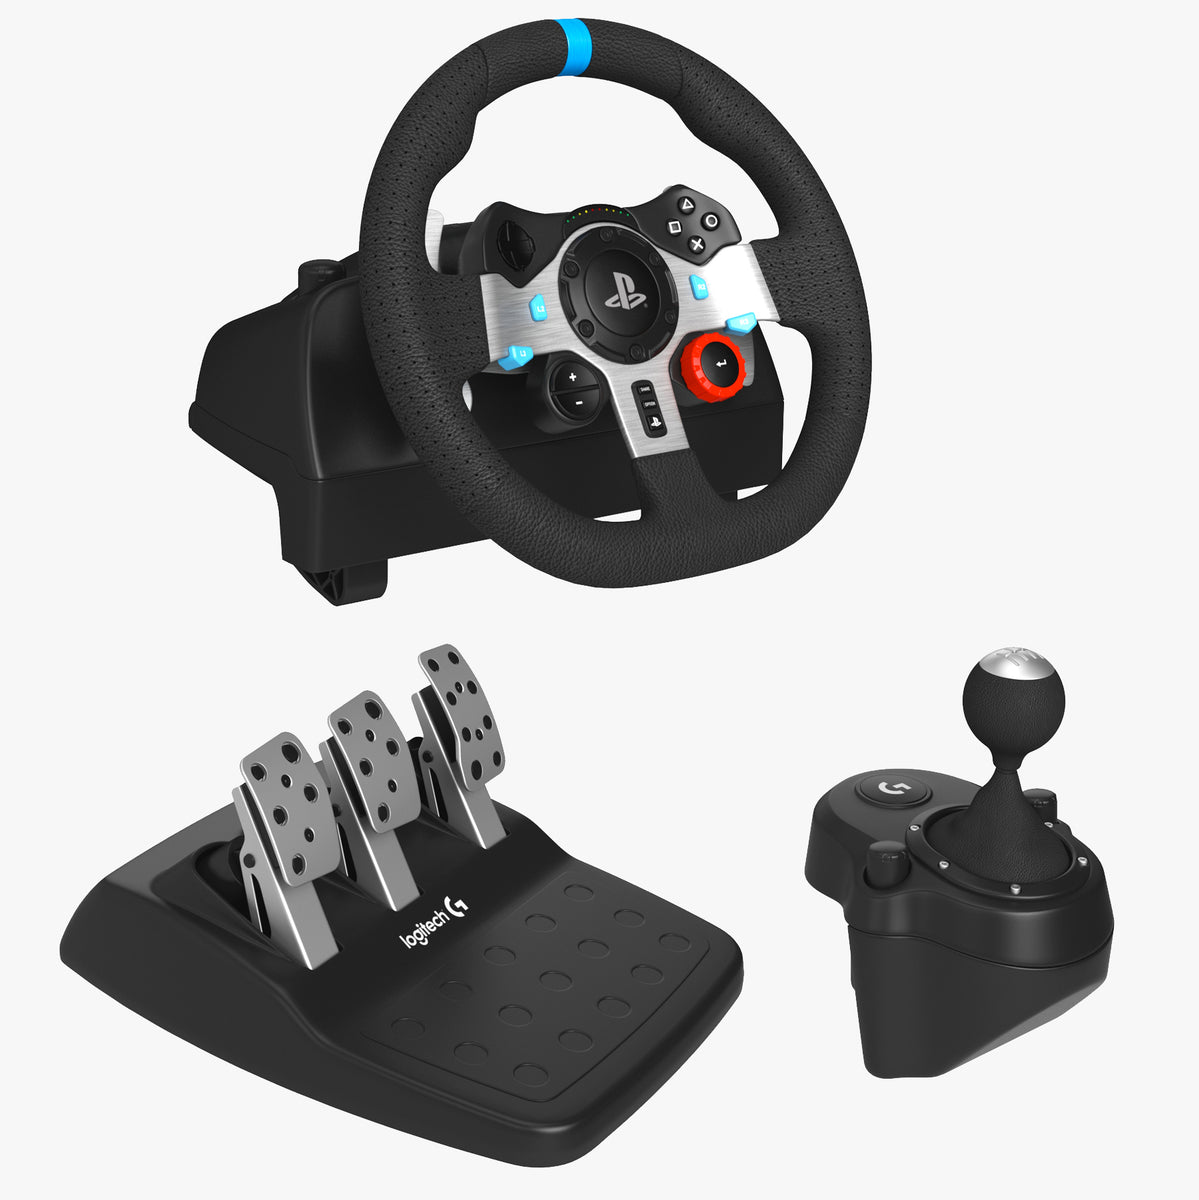 Logitech G29 Driving Force Racing Wheel Set 3D Model